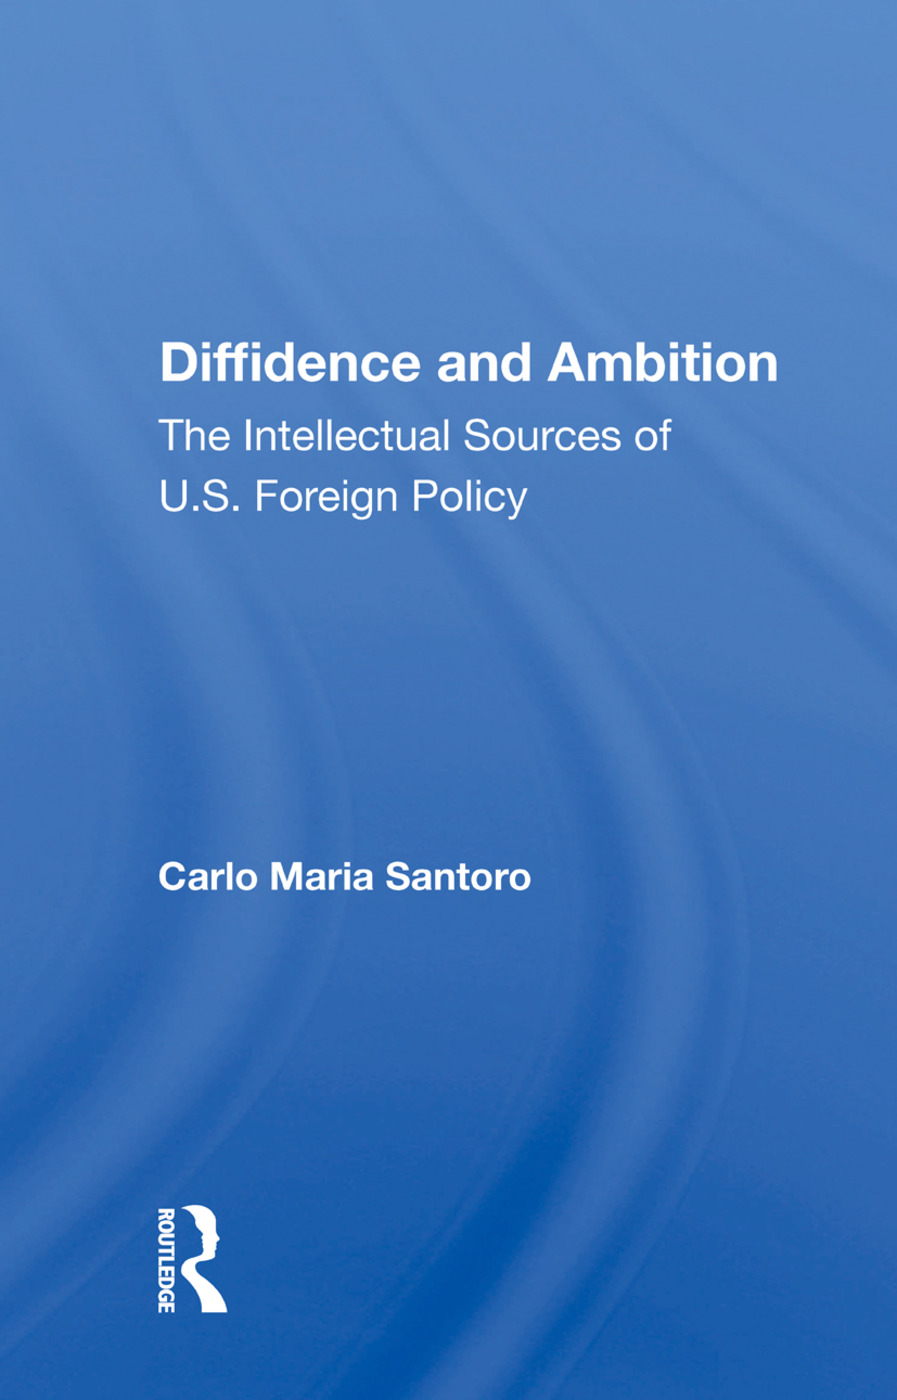 Diffidence And Ambition: The Intellectual Sources Of U.s. Foreign Policy, 1st Edition (Paperback) book cover